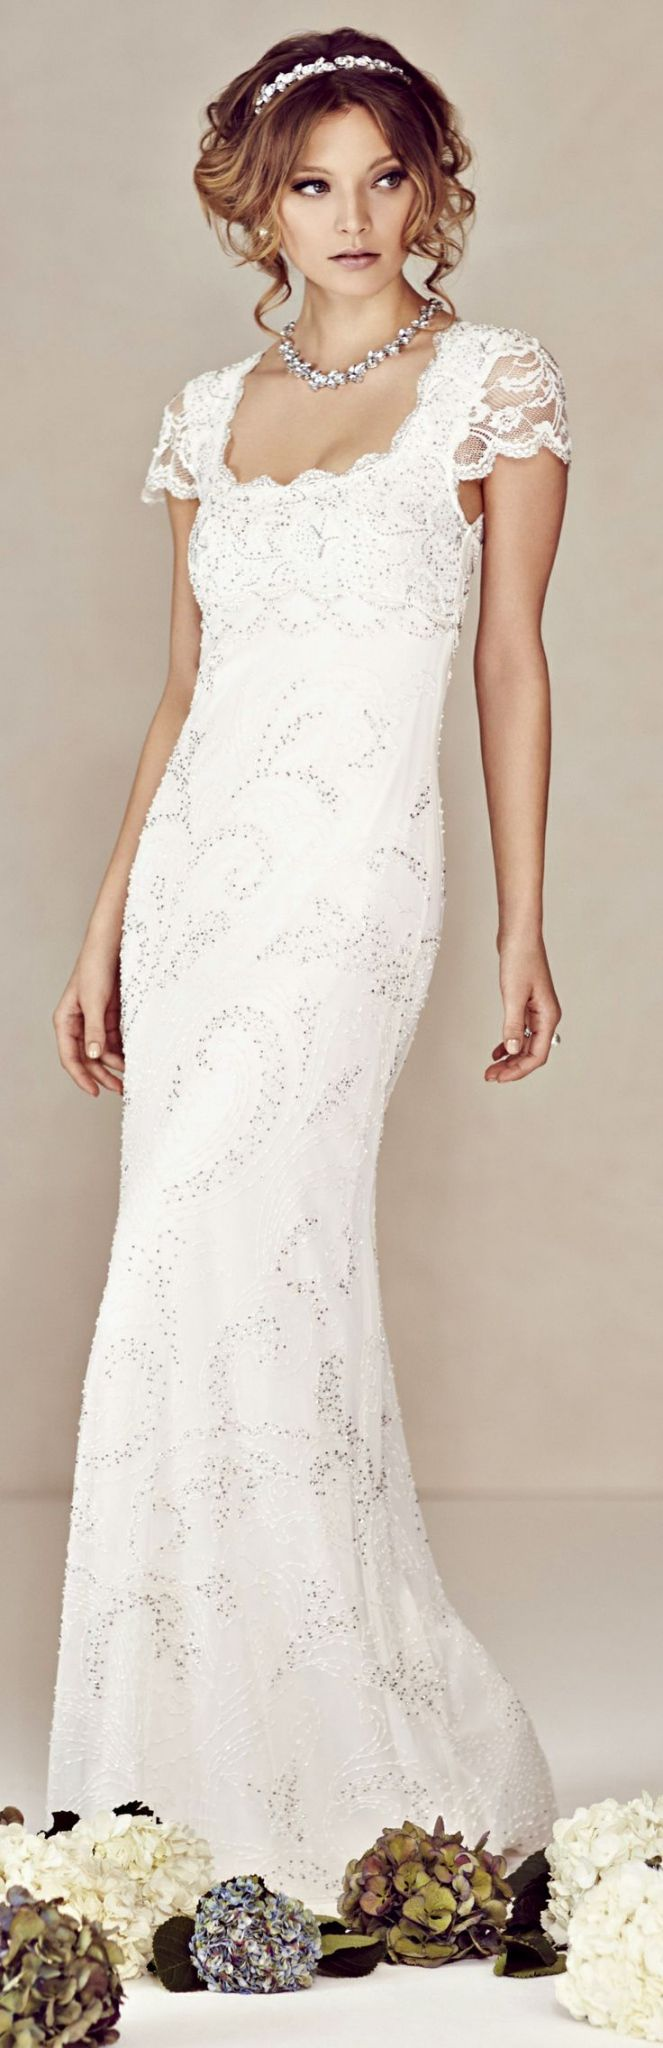 Wedding Dress for Third Marriage - Plus Size Dresses for Wedding ...